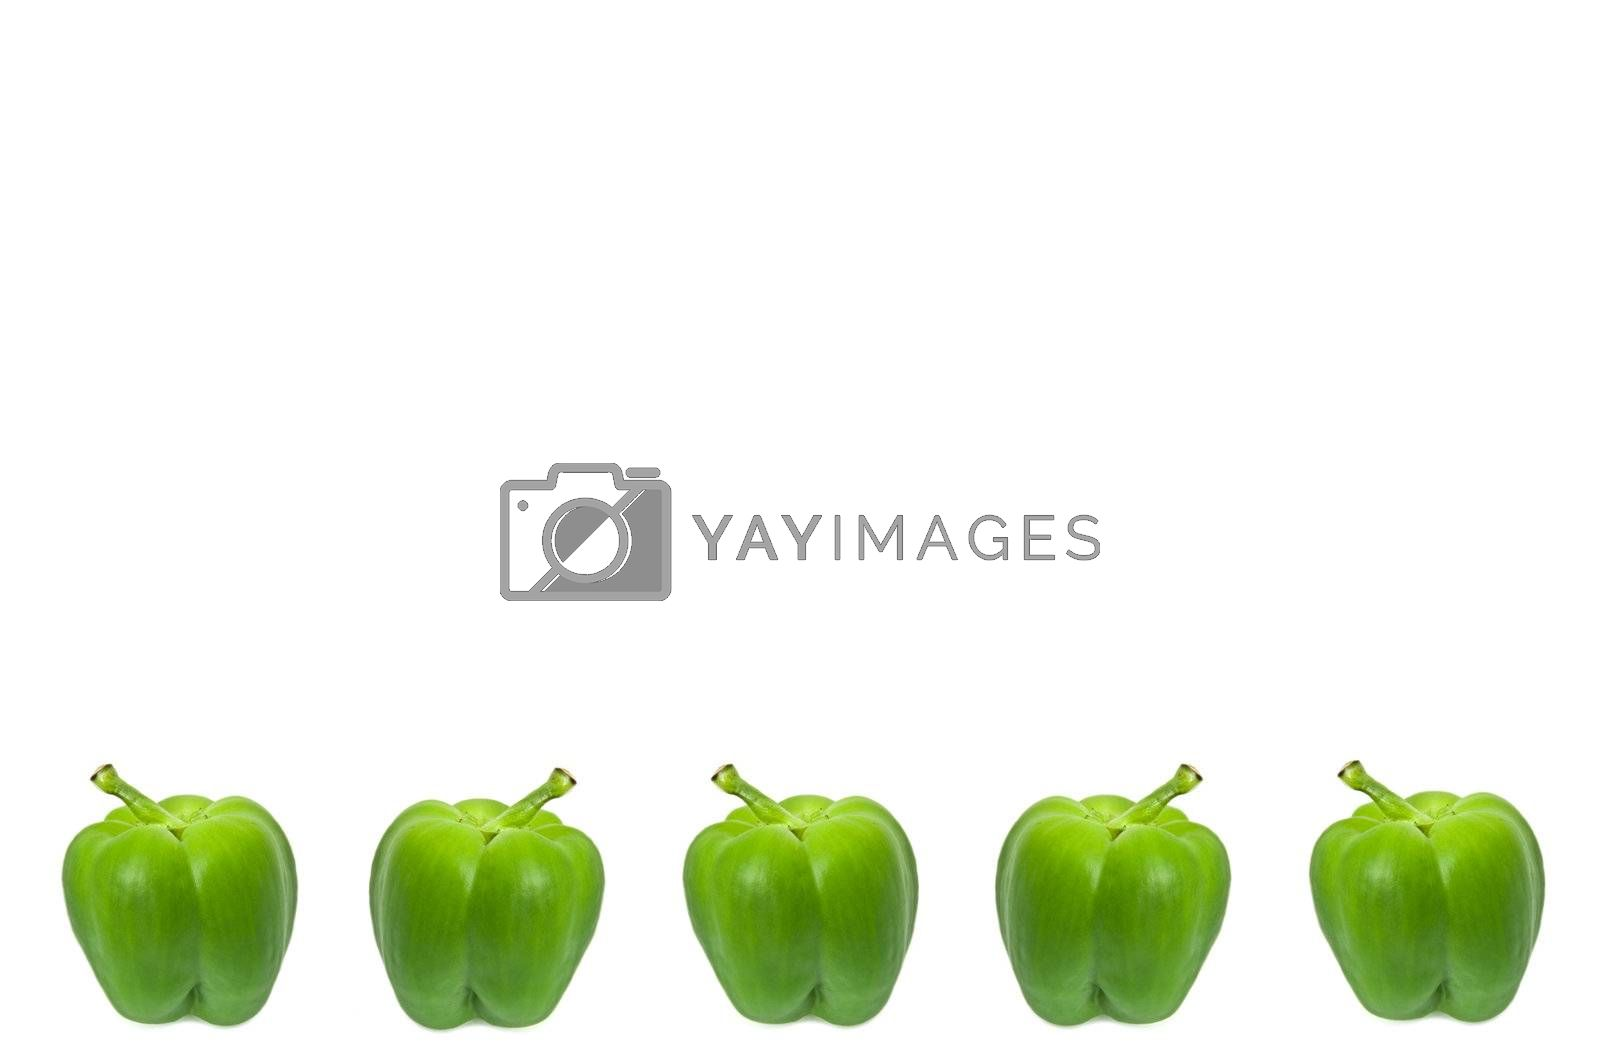 Five small whole green peppers arranged horizontally along the bottom border of the image over white.